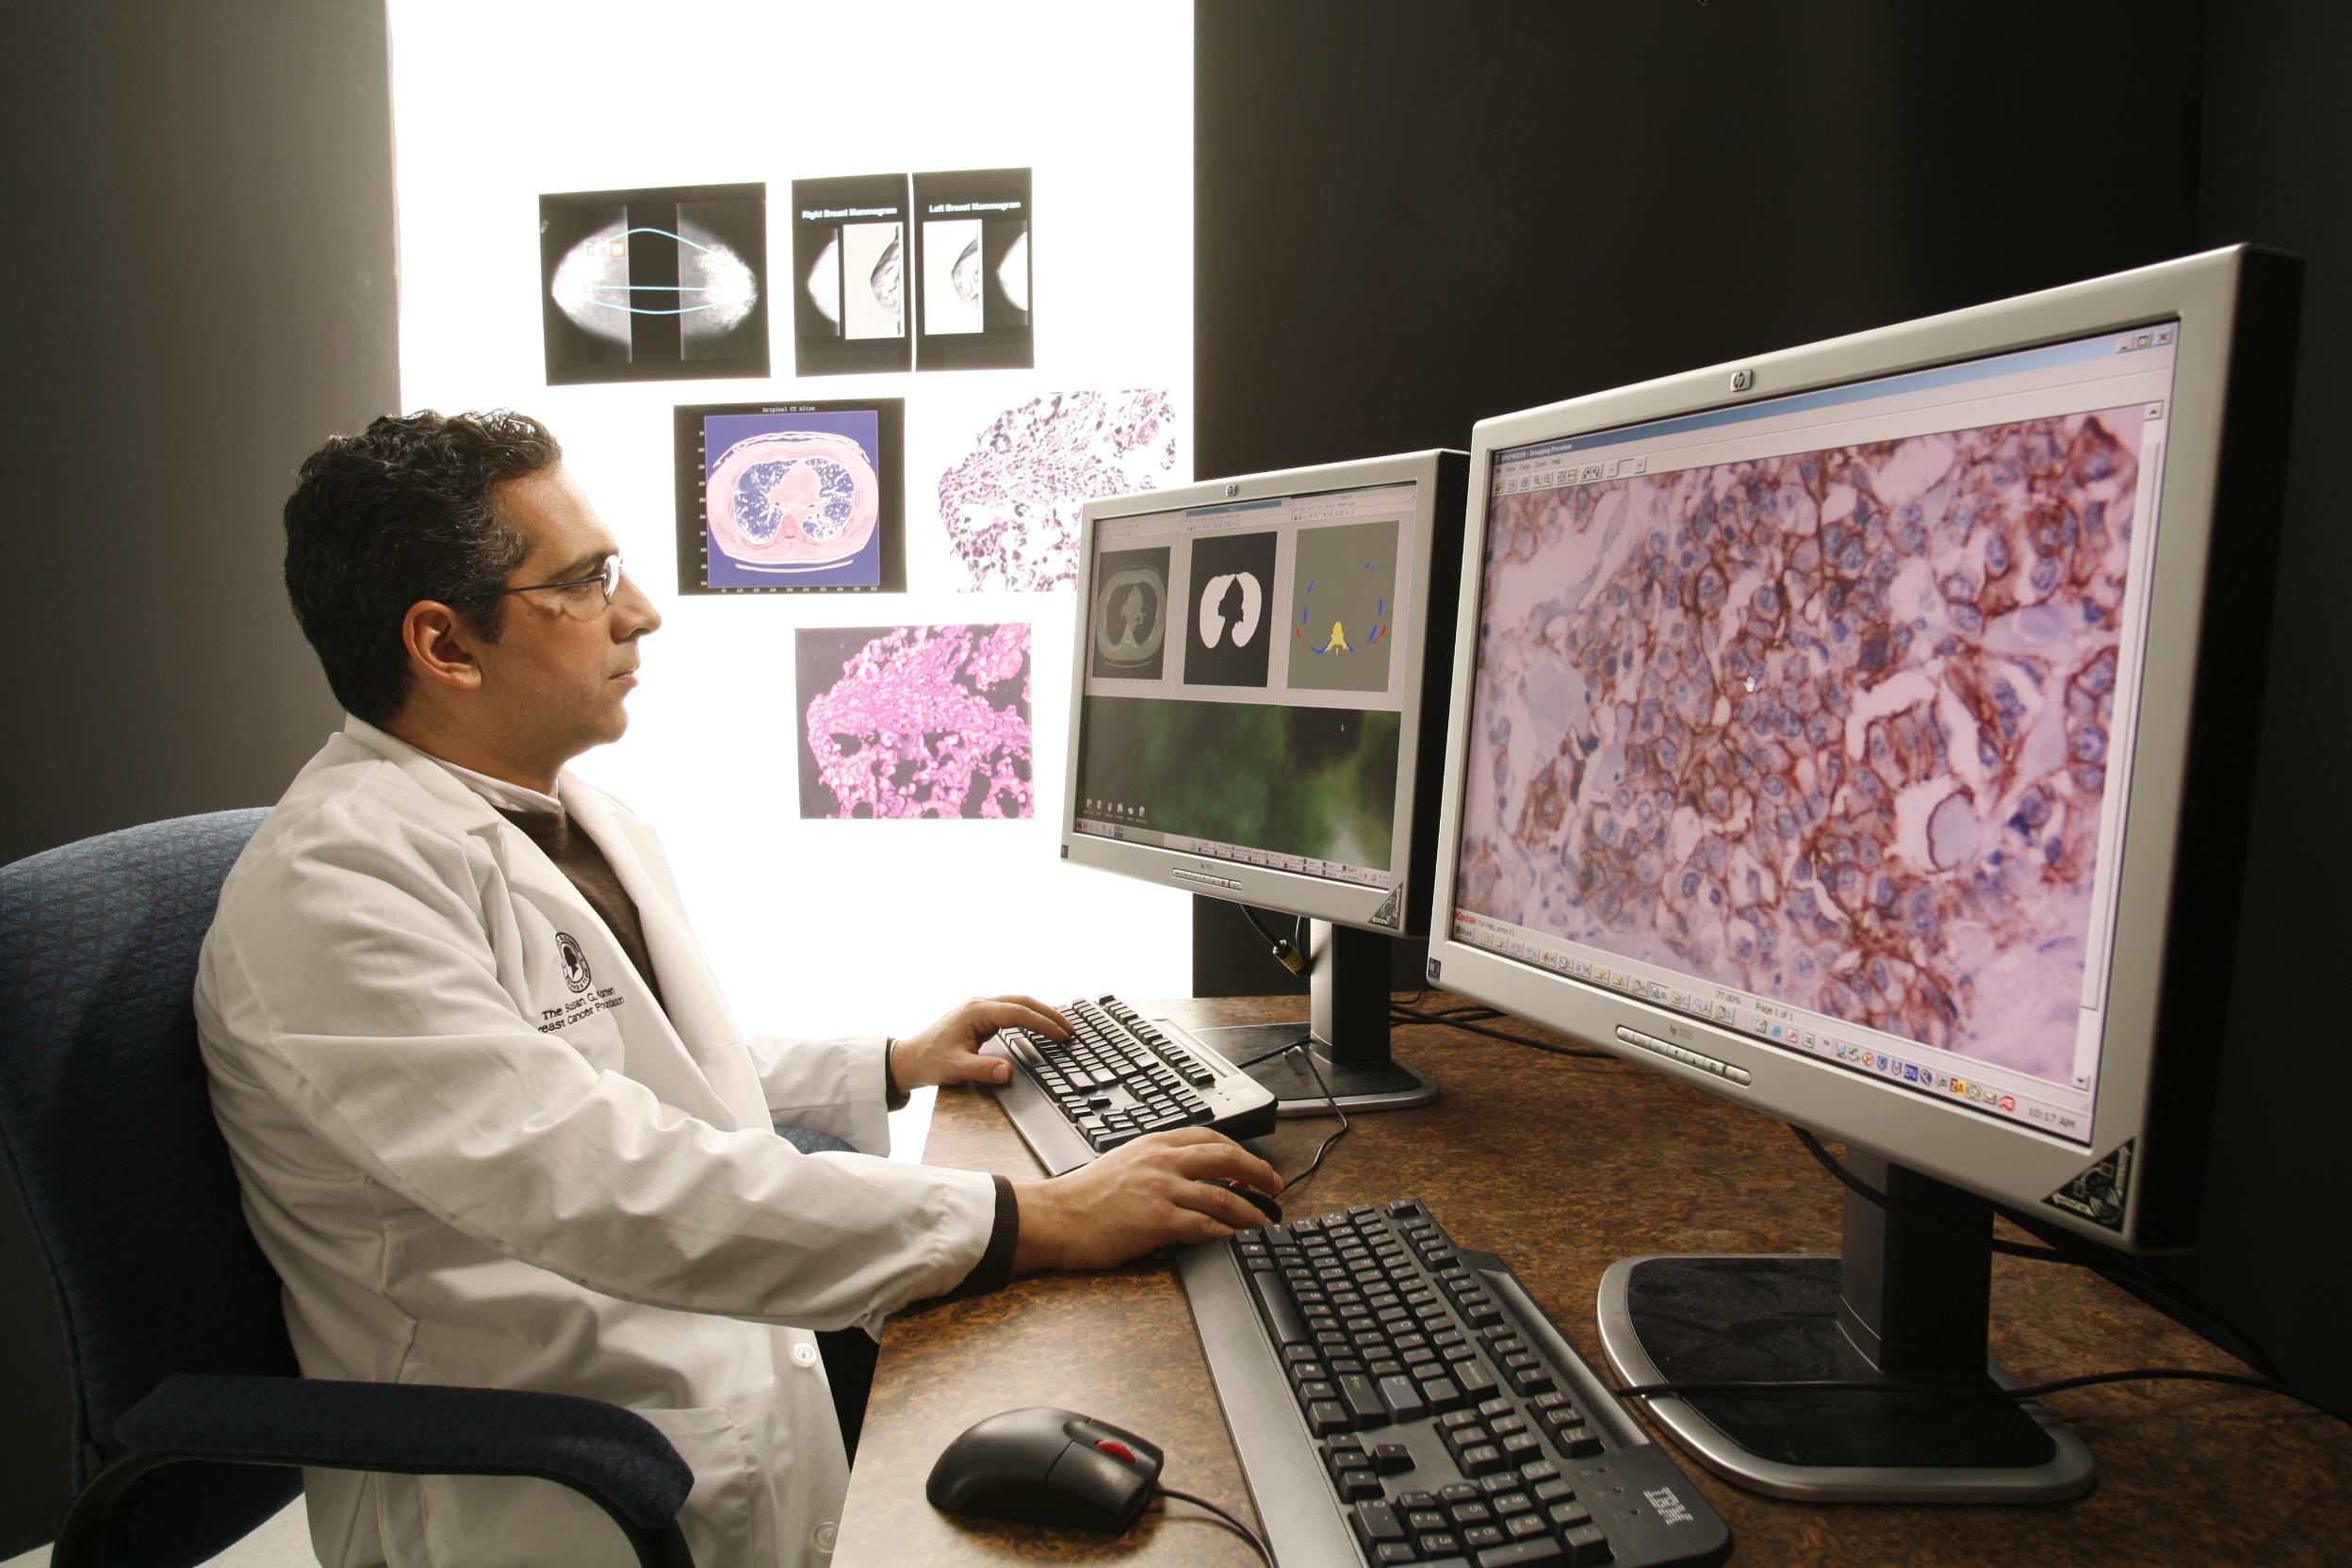 doctor looking at medical images on a computer